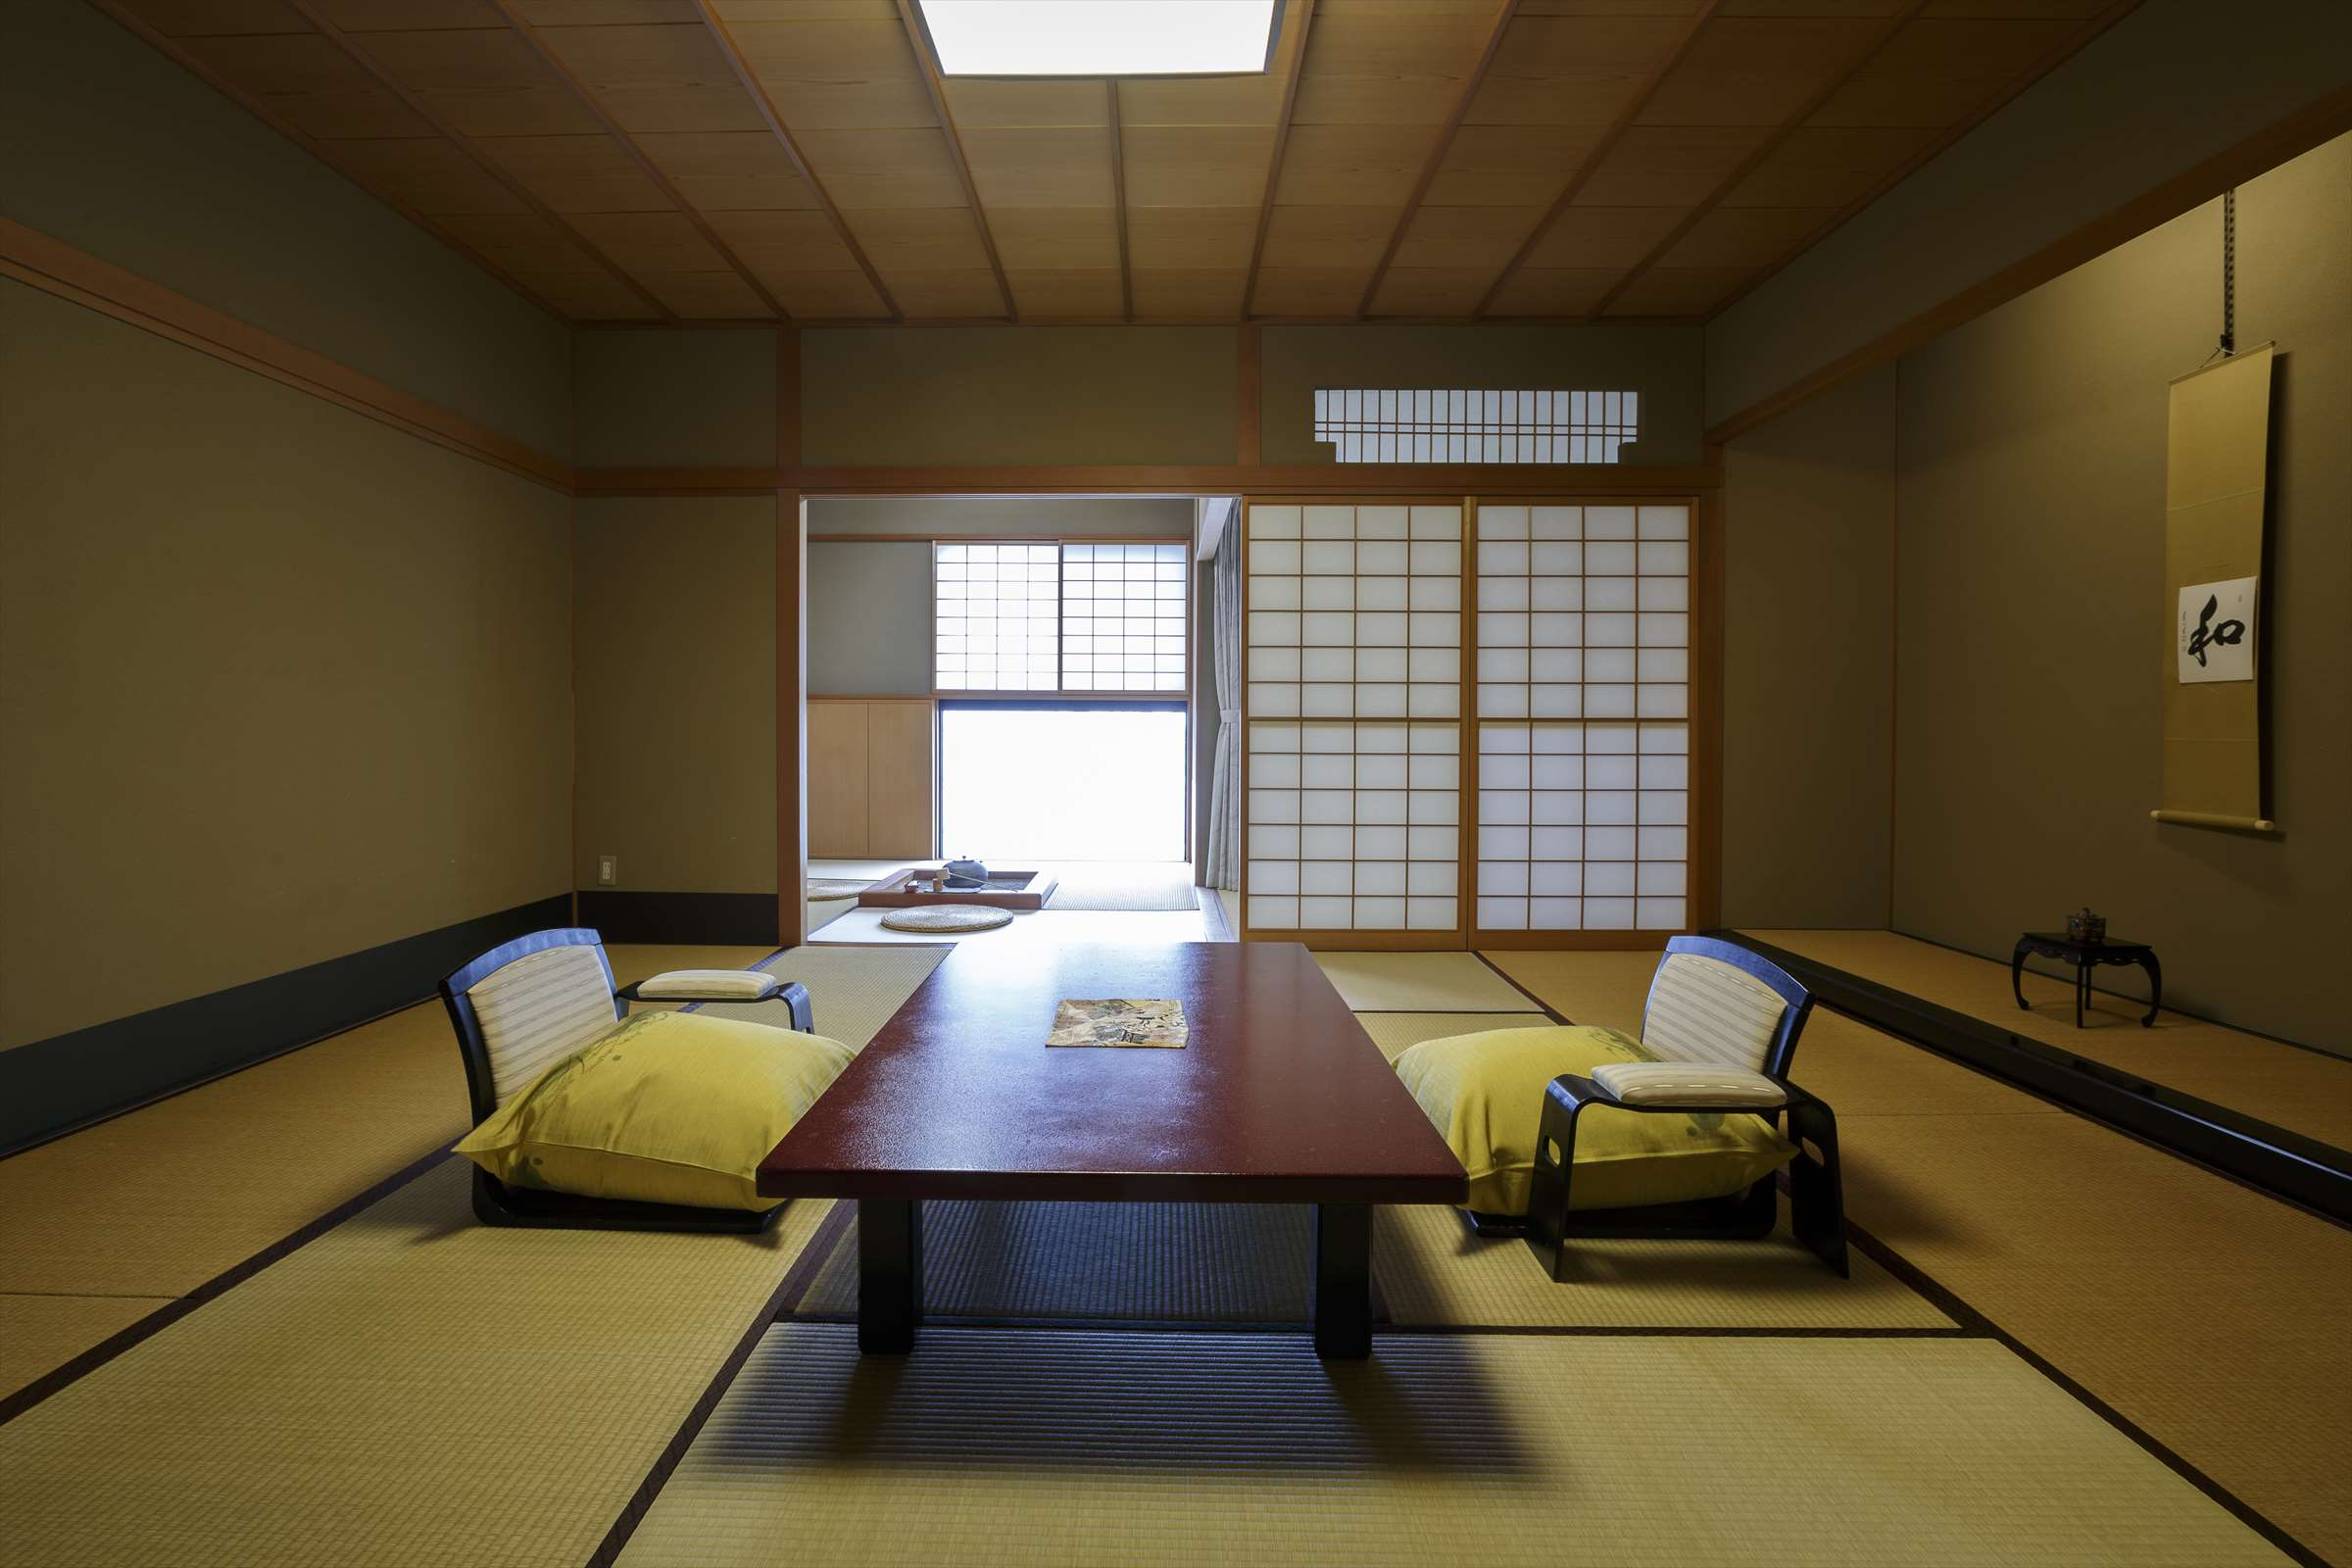 Japanese Style Room with a Hearth